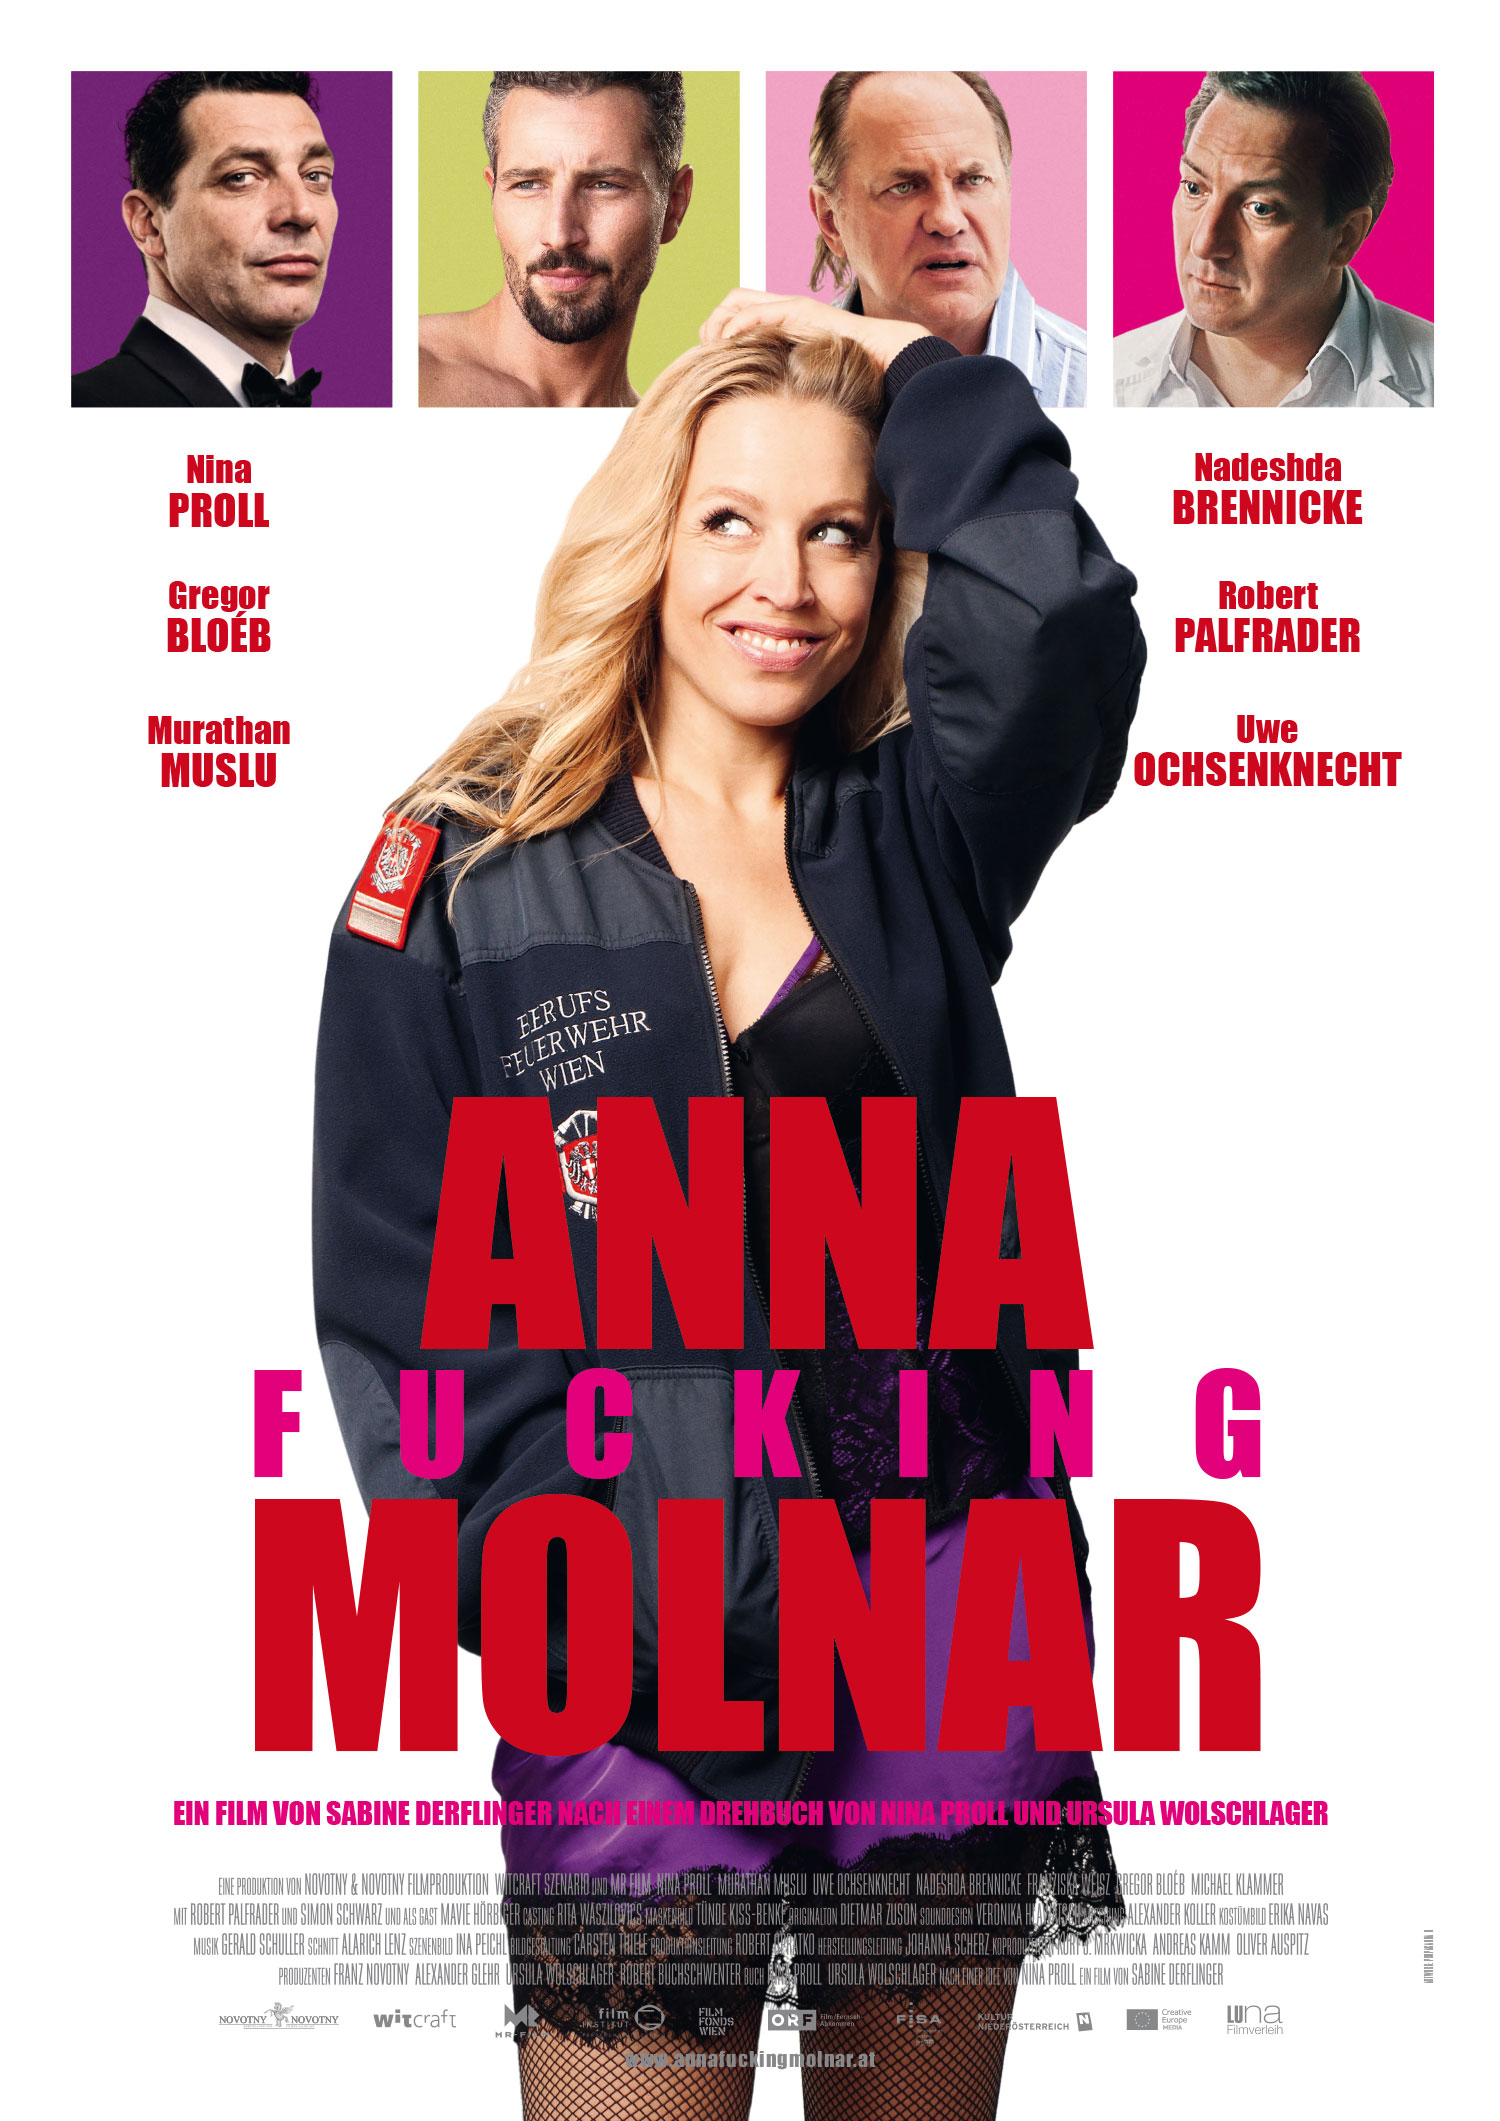 "Filmladen<a href=""/anna-fucking-molnar"">→</a><strong>Kreation</strong>"